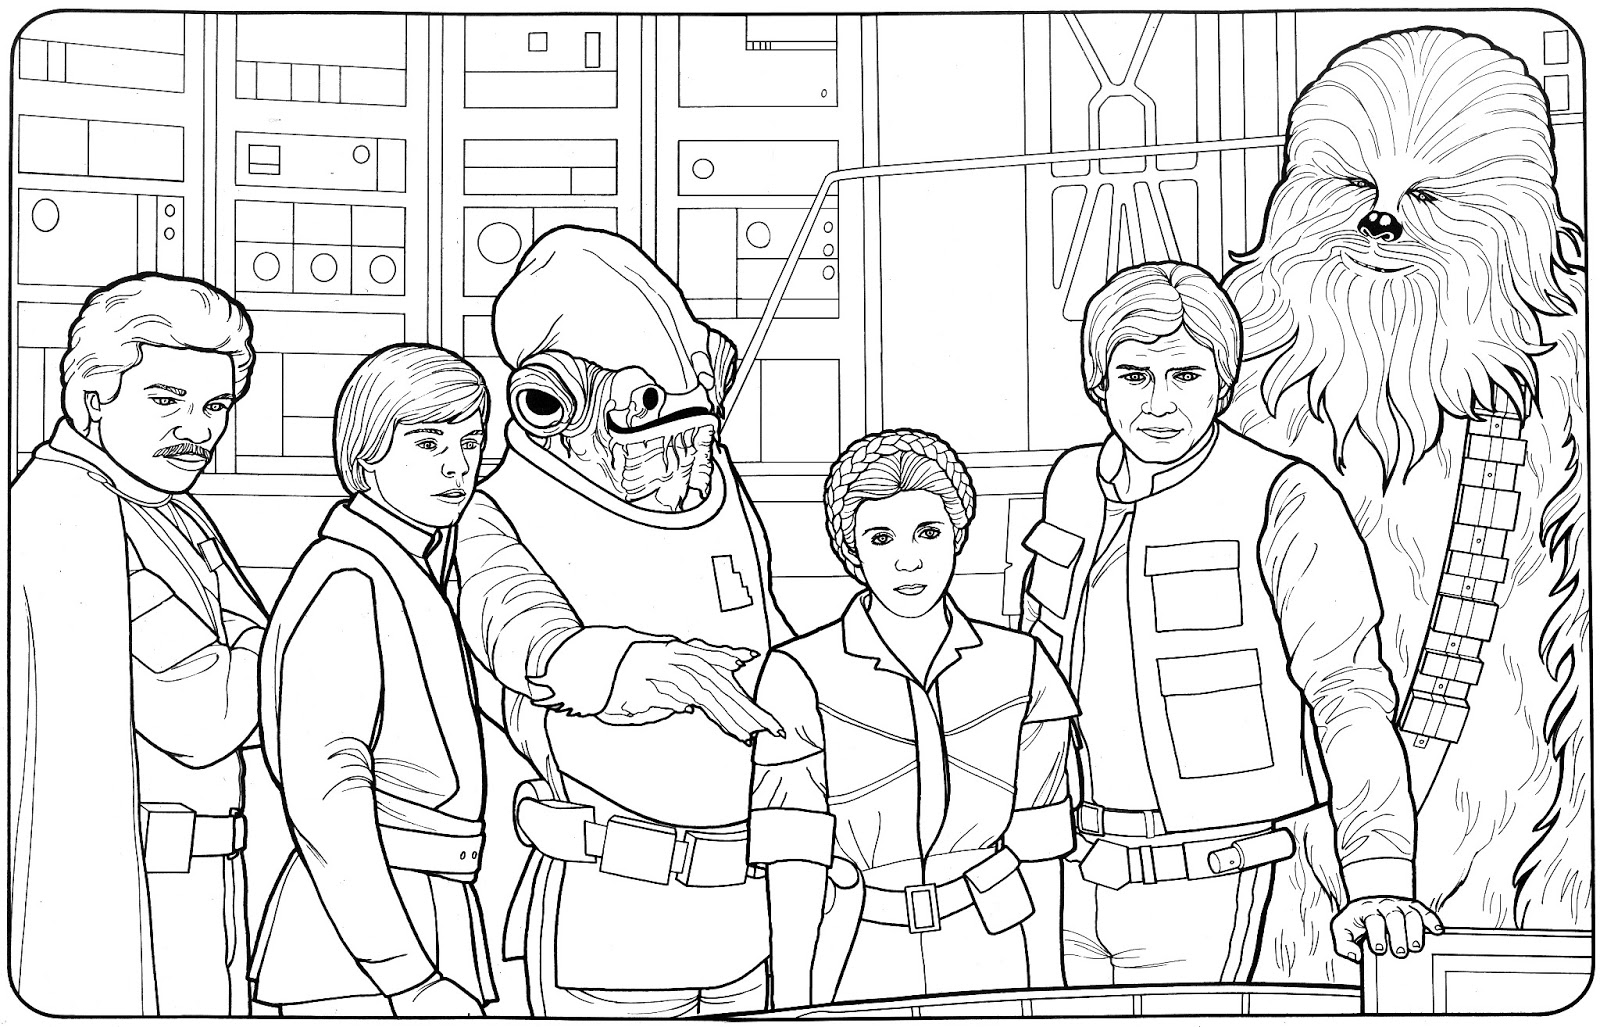 Make Your Own Star Wars Adventure With 50 Vintage 1980s Coloring Pages